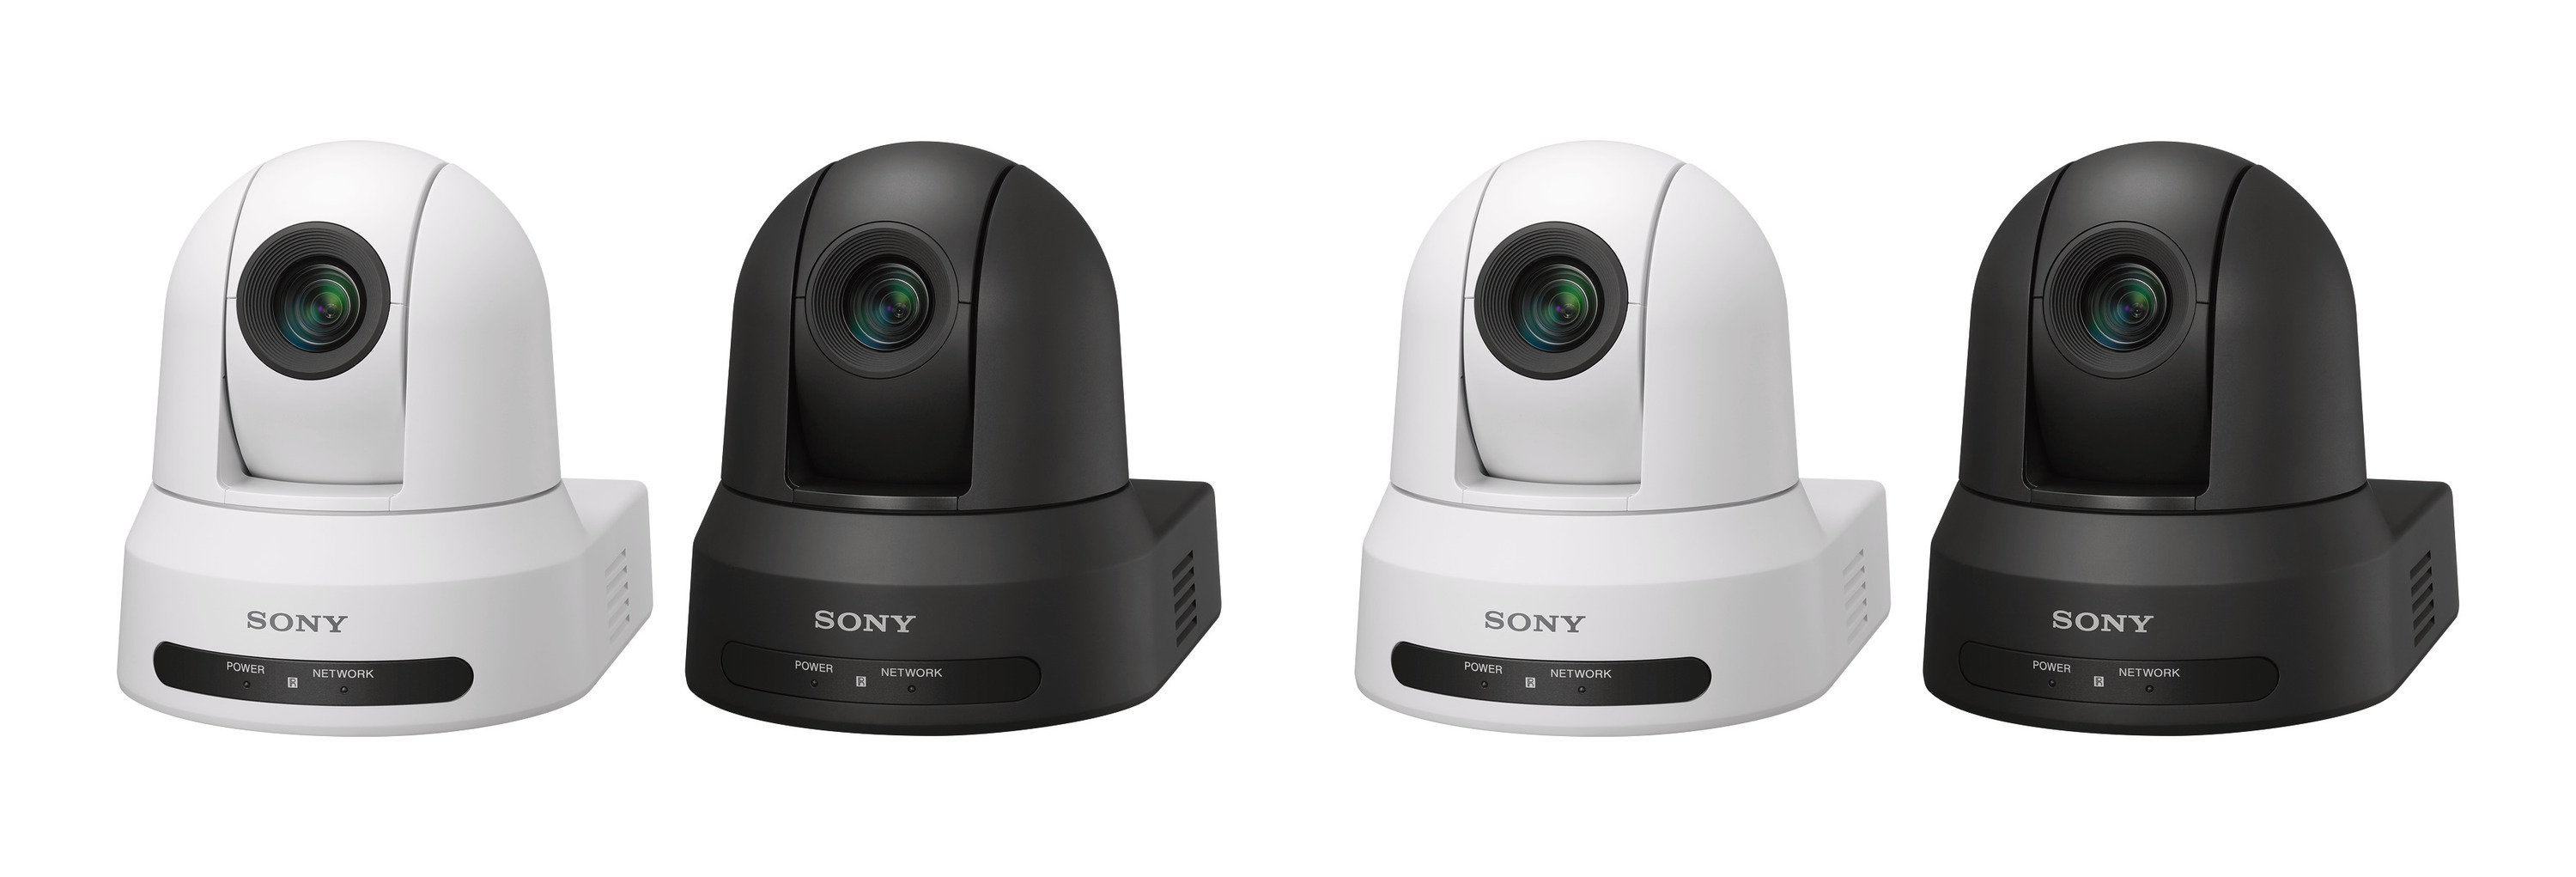 Sony Expands Lineup of Powerful IP-Based, Pan-Tilt-Zoom Cameras with NDI/HX Capability